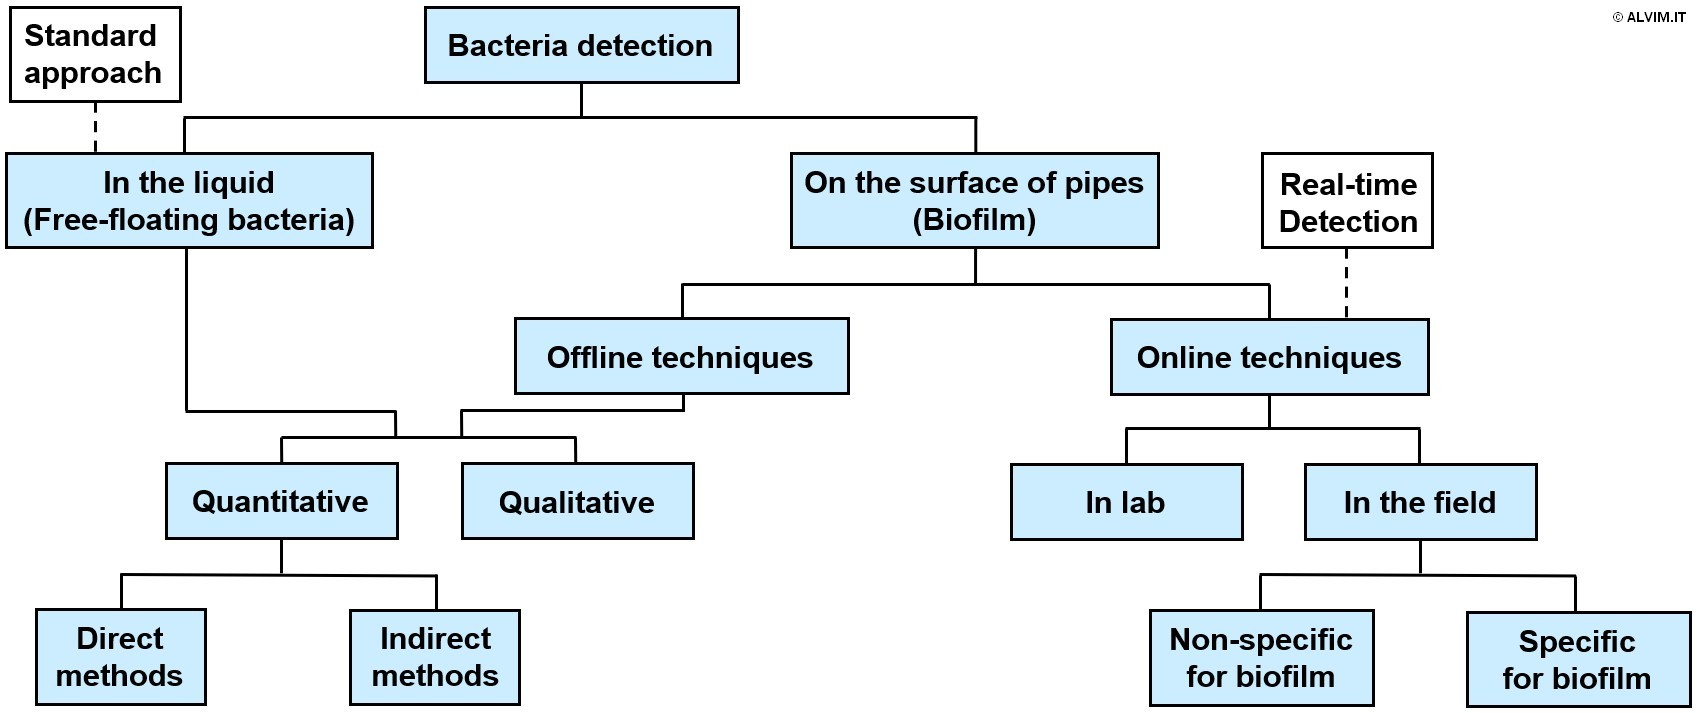 Different categories of bacteria detection methods and techniques